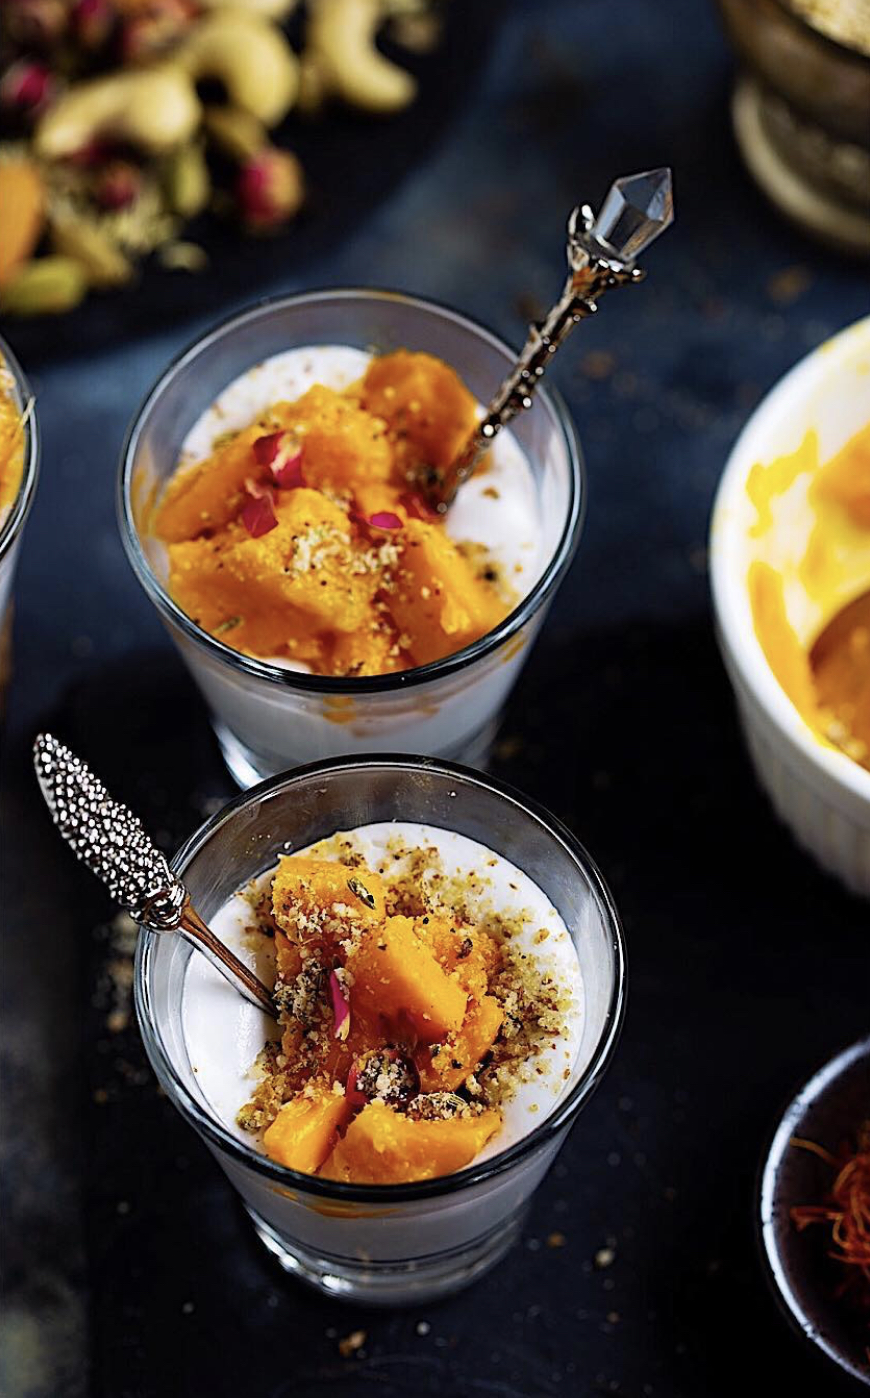 Vegan Dessert with Mango and Coconut Cream